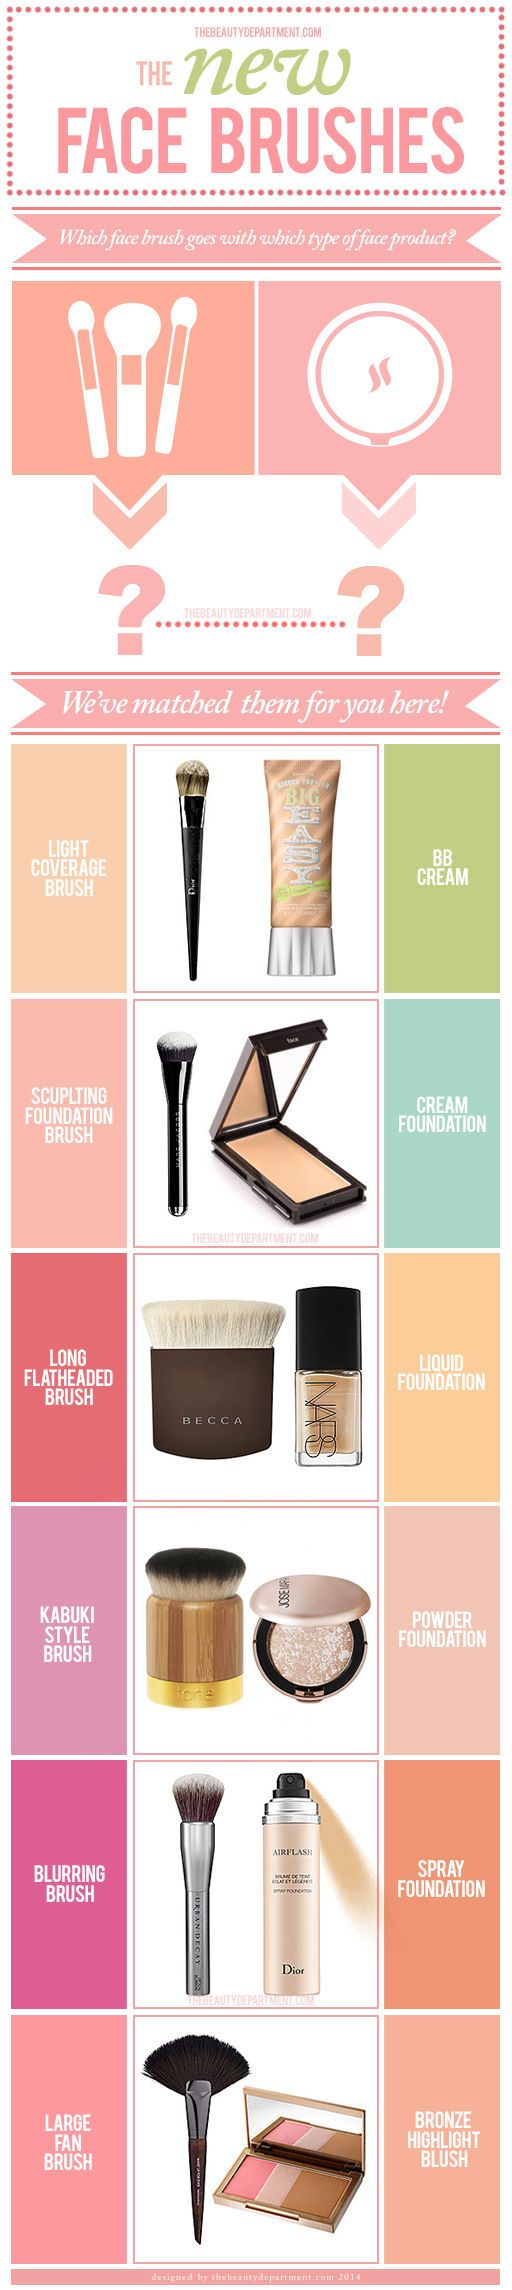 These new face brushes are game changers!